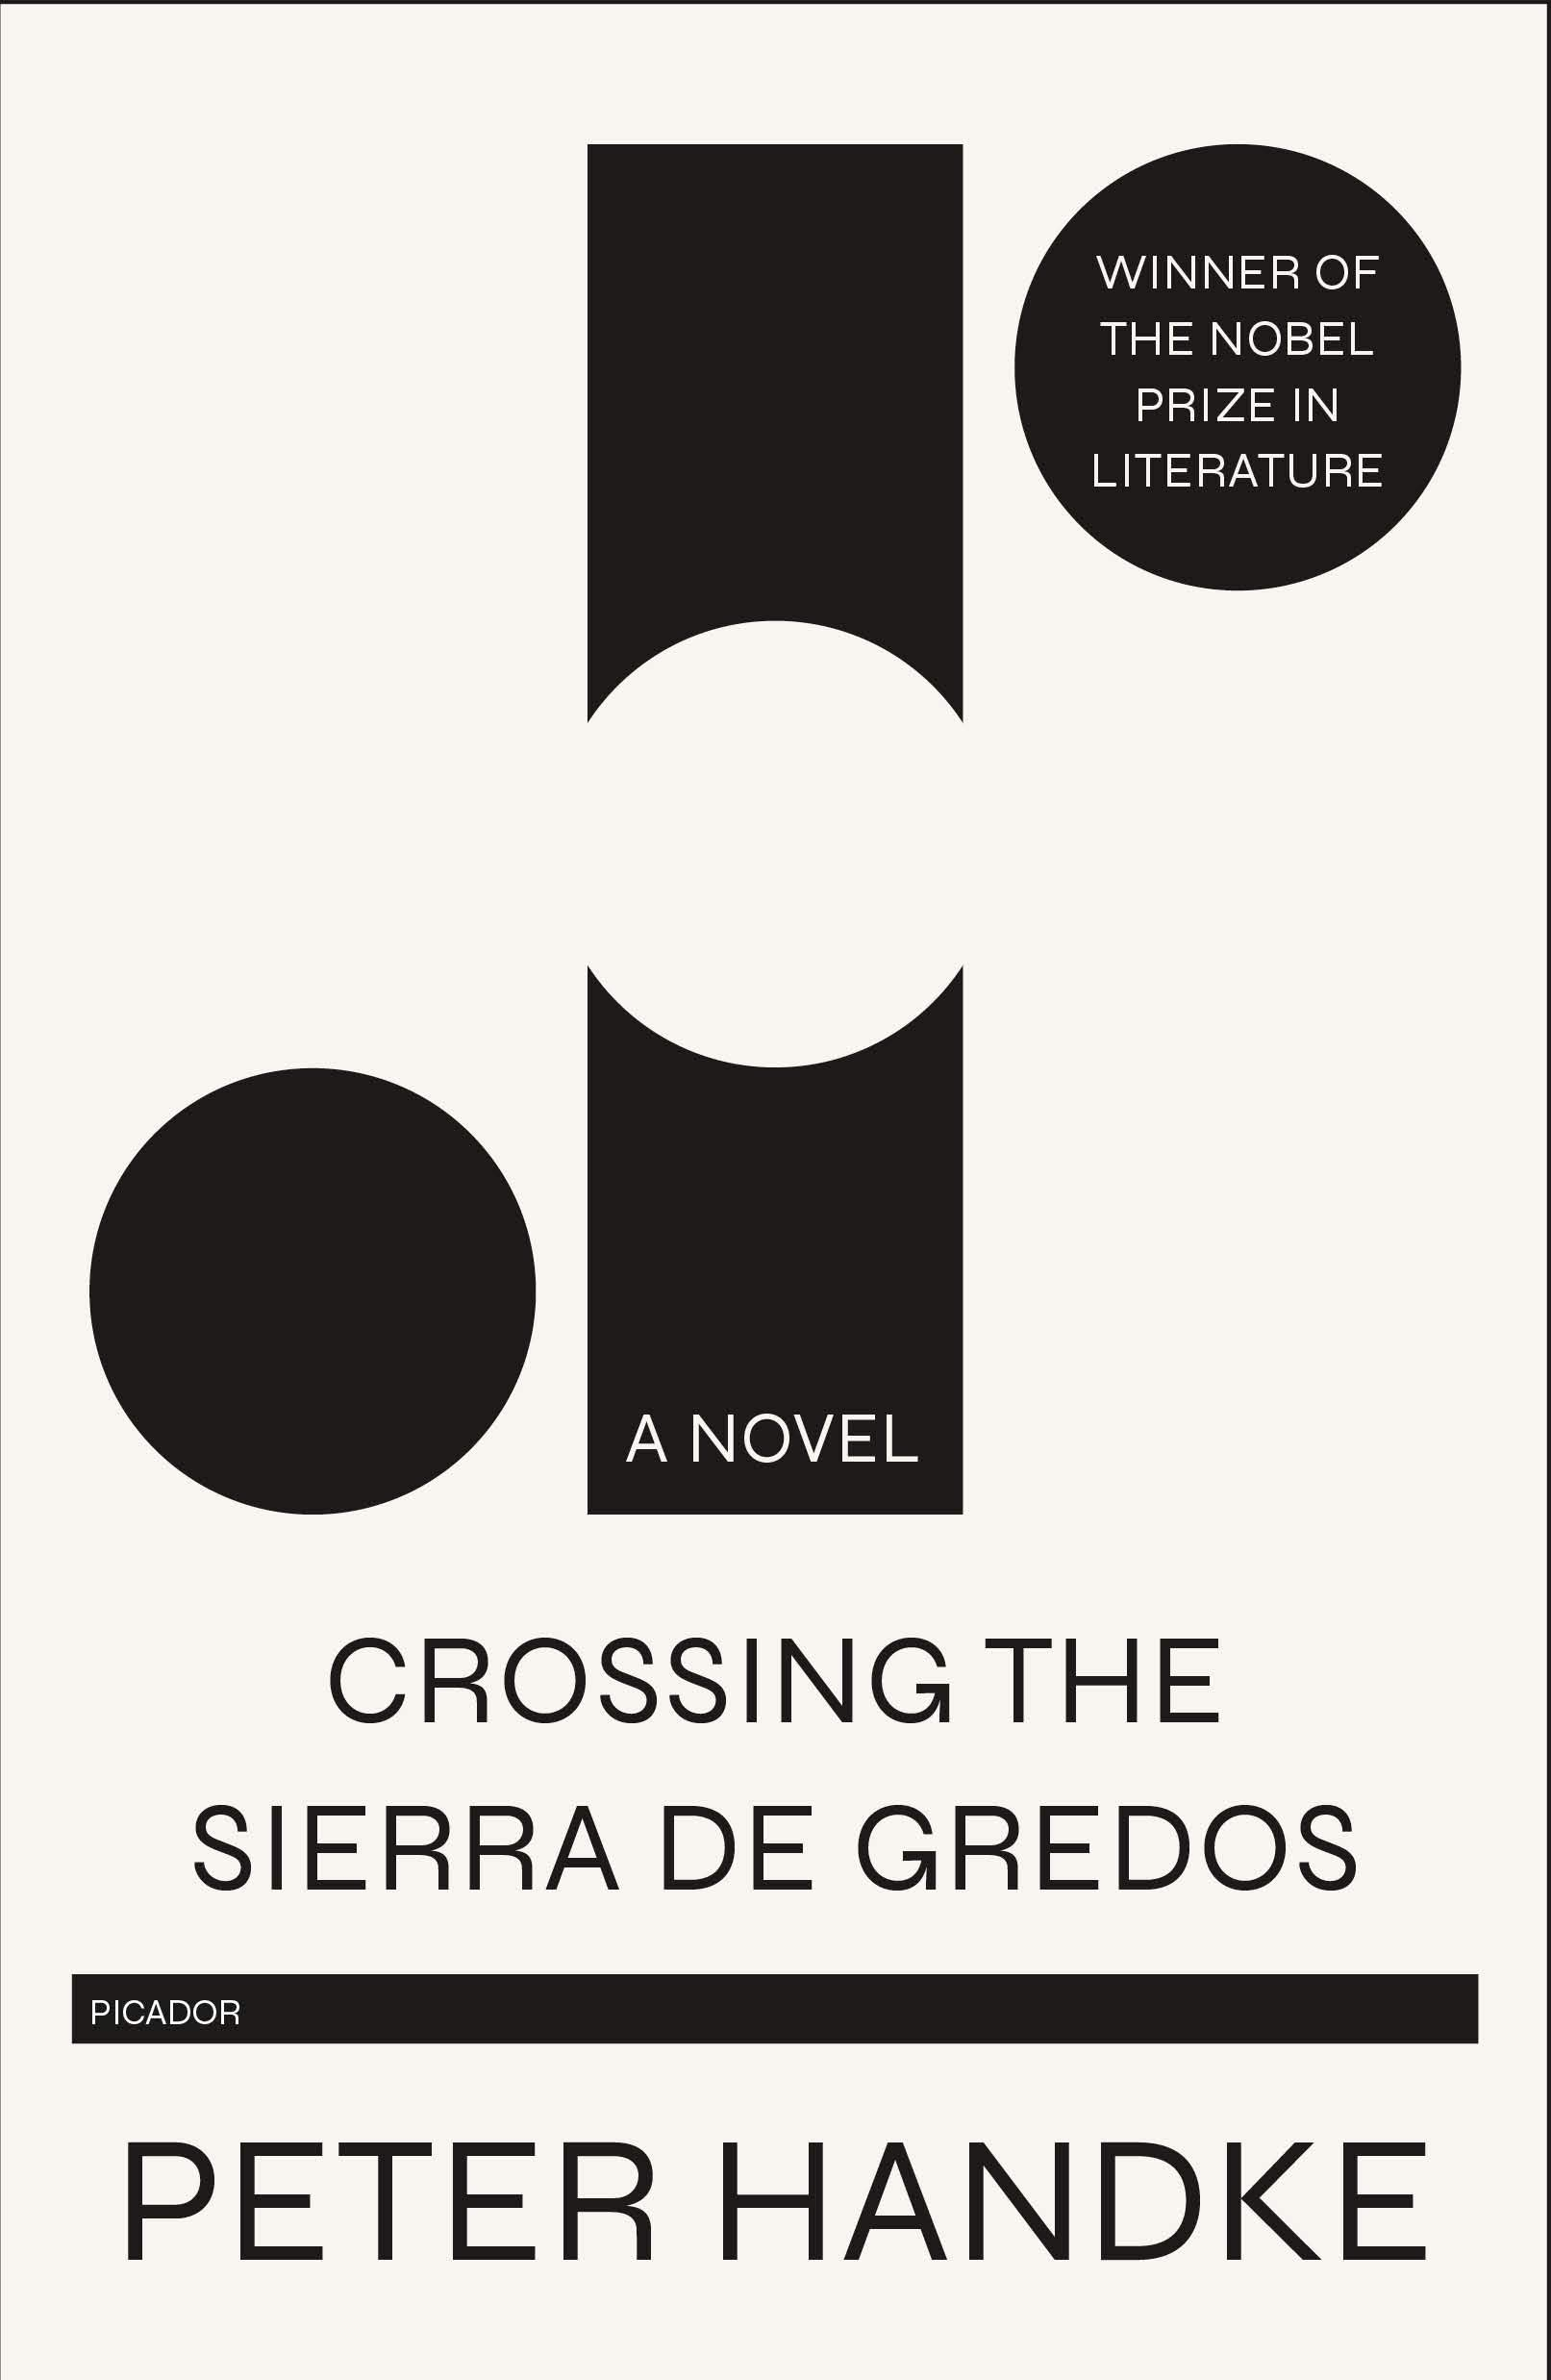 Crossing the Sierra de Gredos: A Novel: Amazon.es: Handke, Peter, Winston, Krishna: Libros en idiomas extranjeros